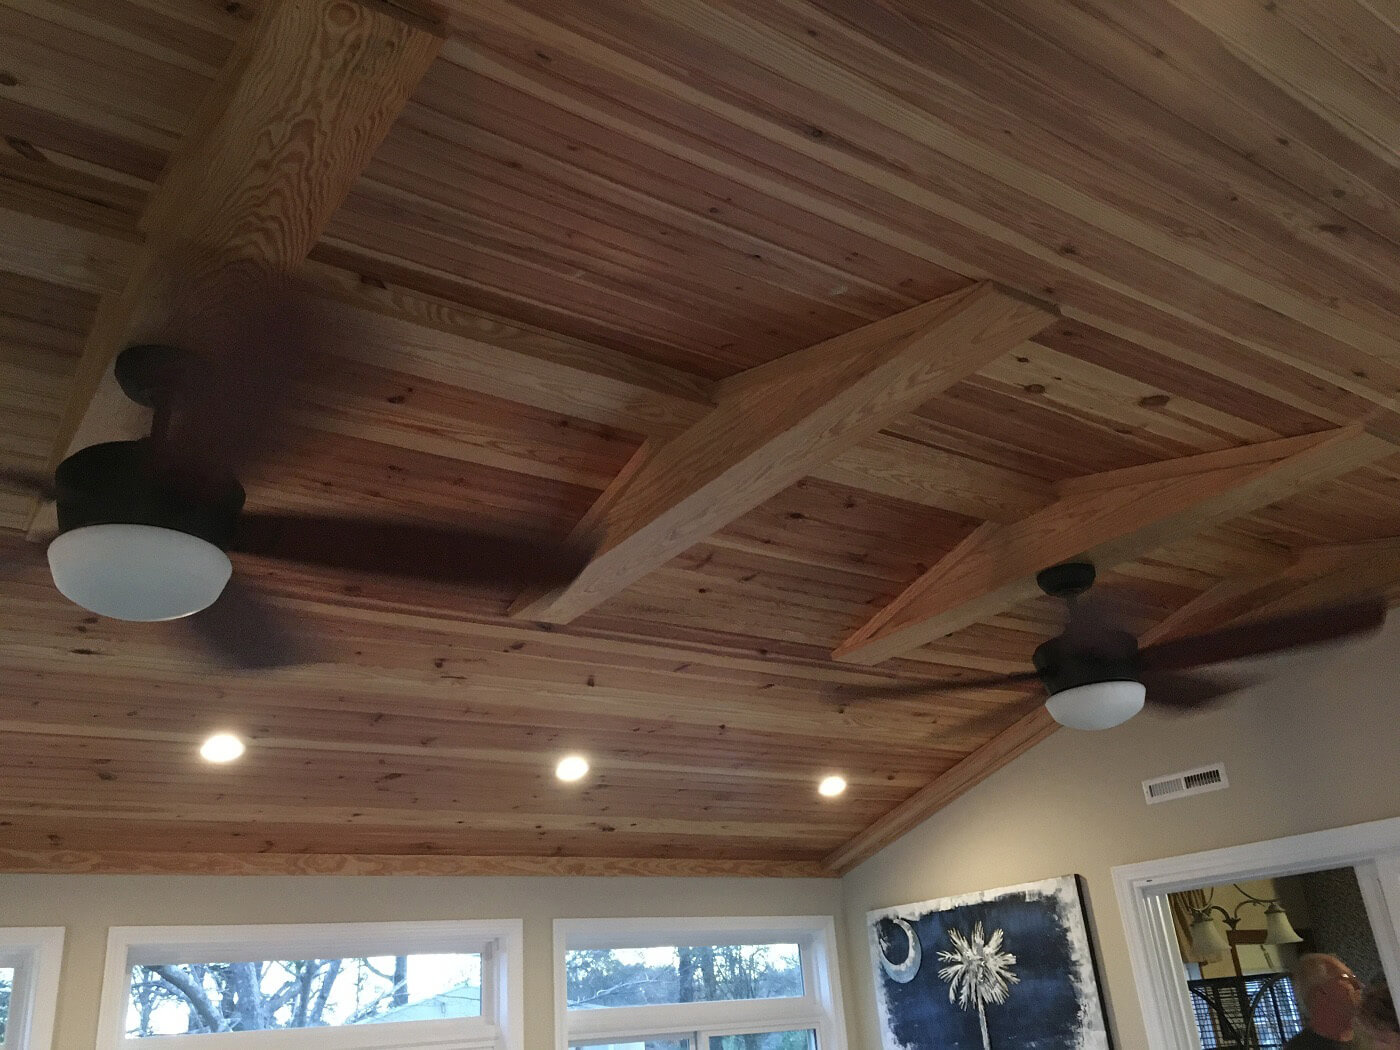 Sunroom ceiling with fan and lighting